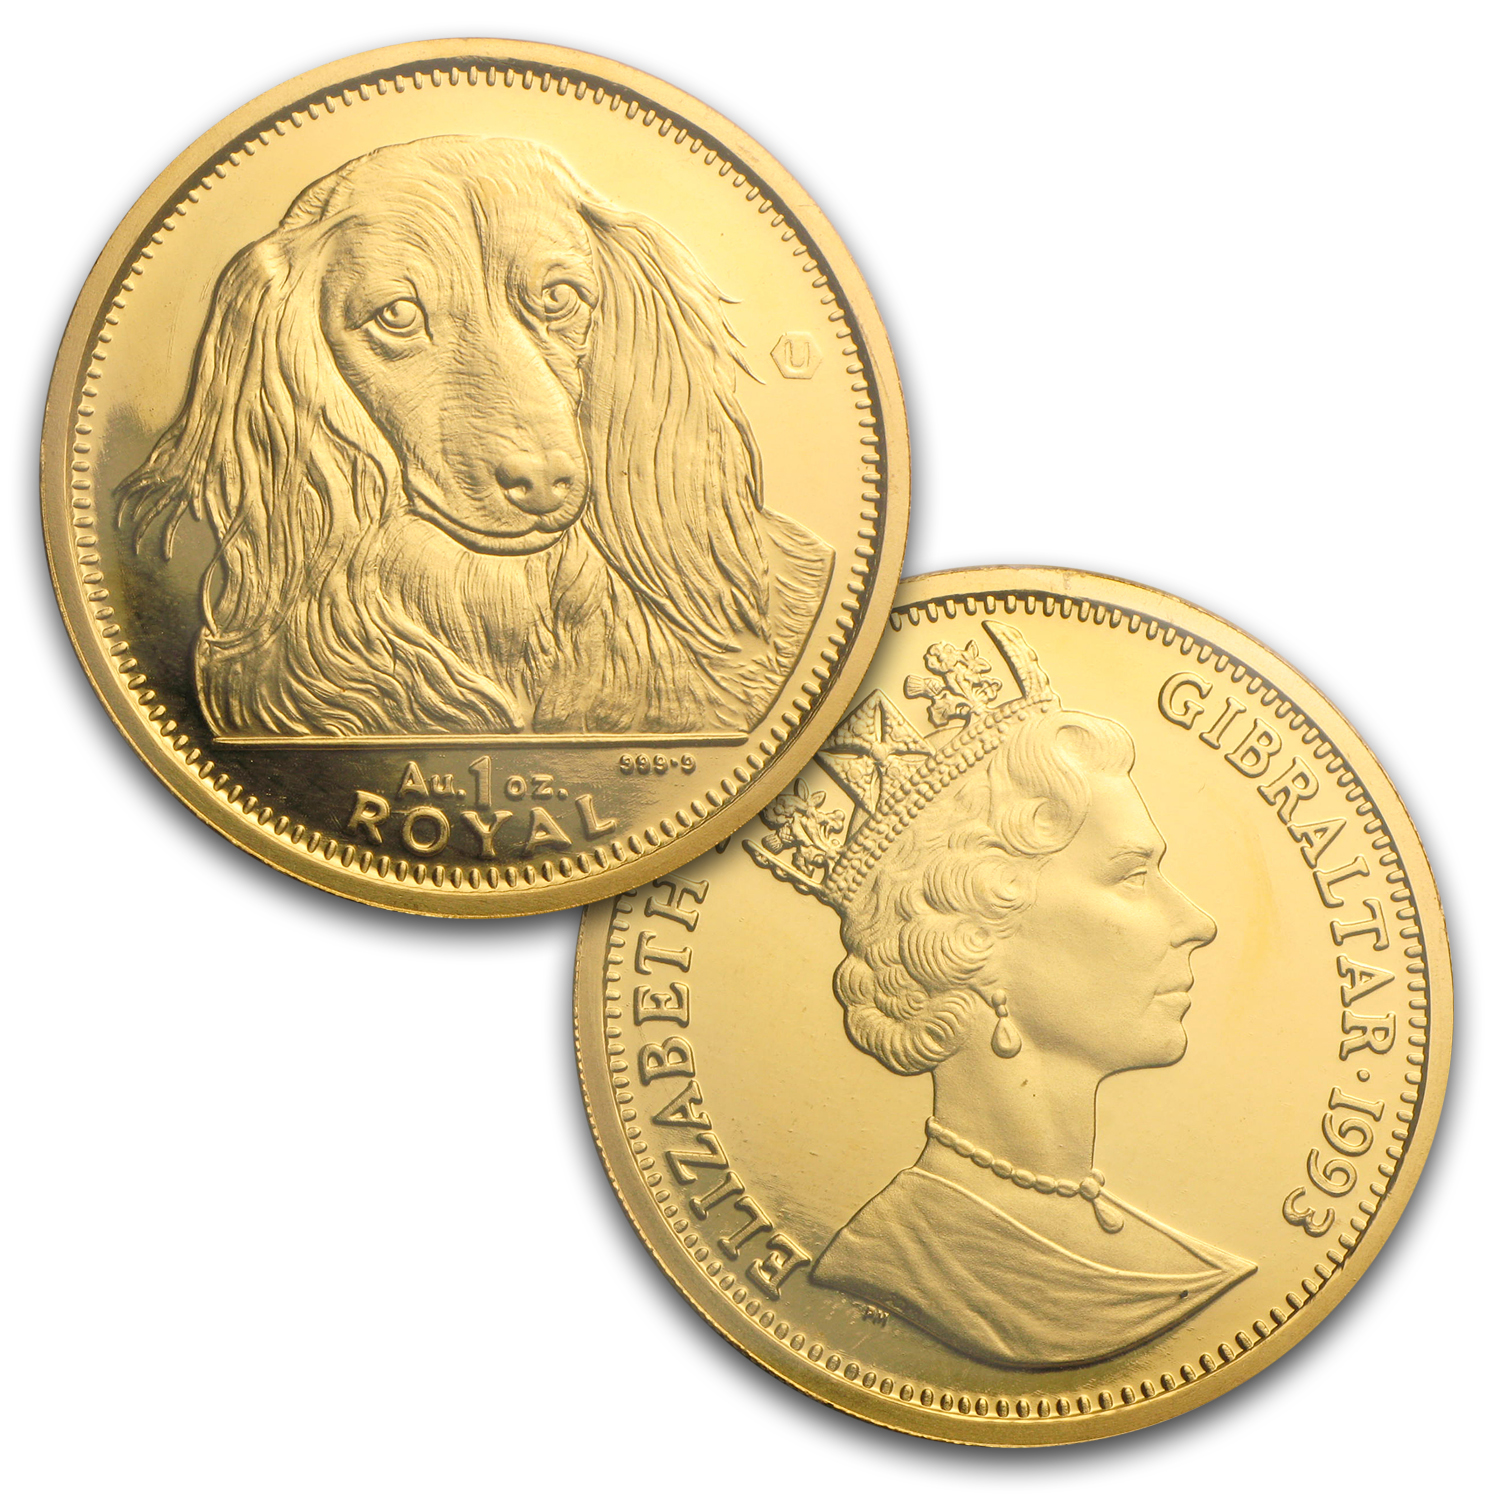 1993 Gibraltar 5-Coin Gold Long Haired Dachshund Set BU